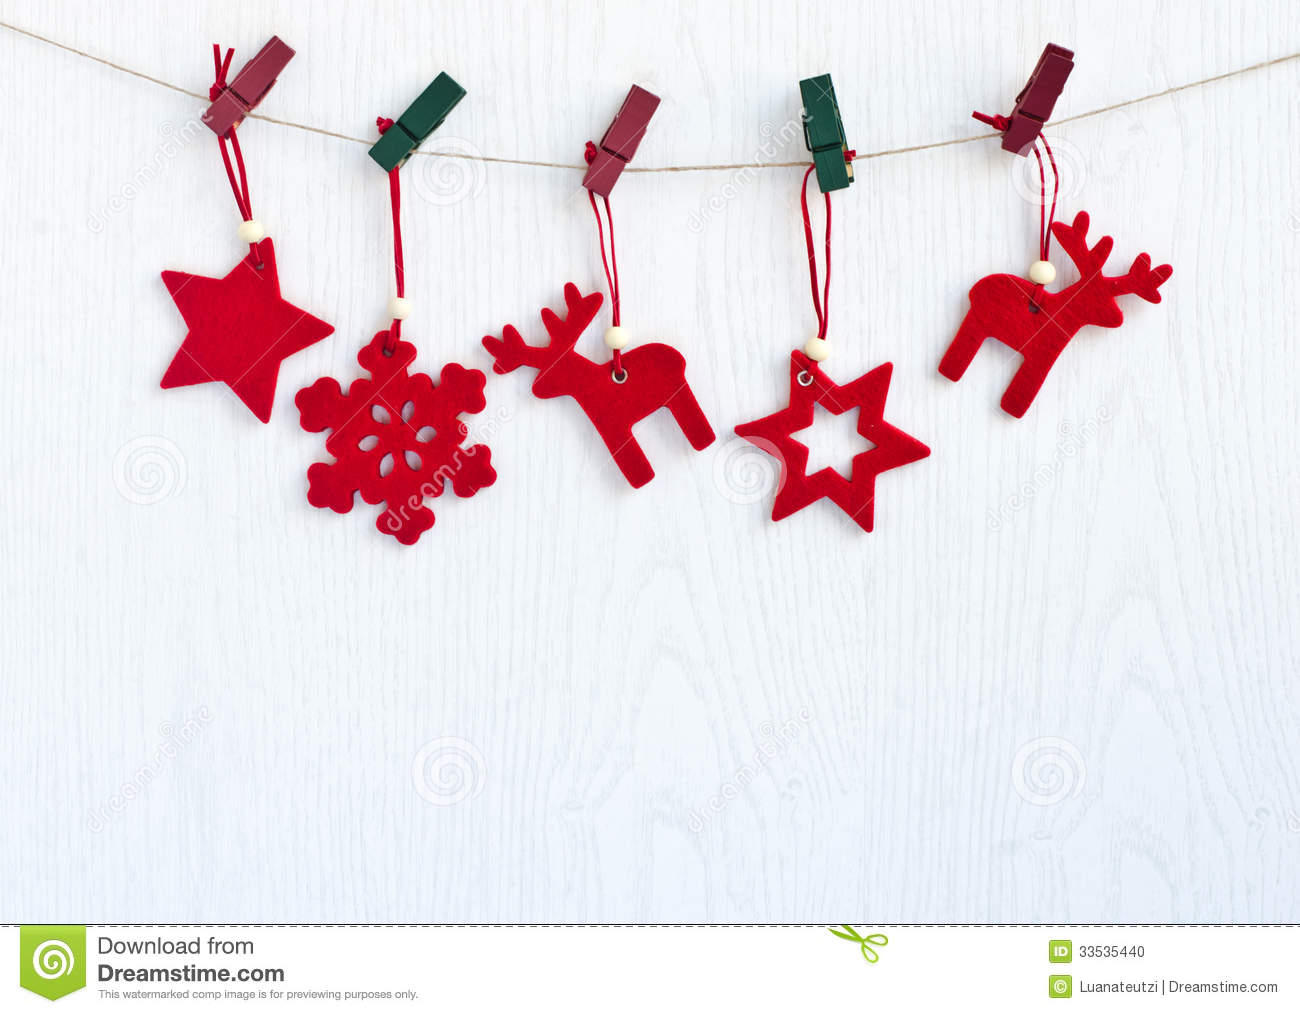 download red christmas decorations hanging from a rope stock photo image of merry - Merry Christmas Decorations